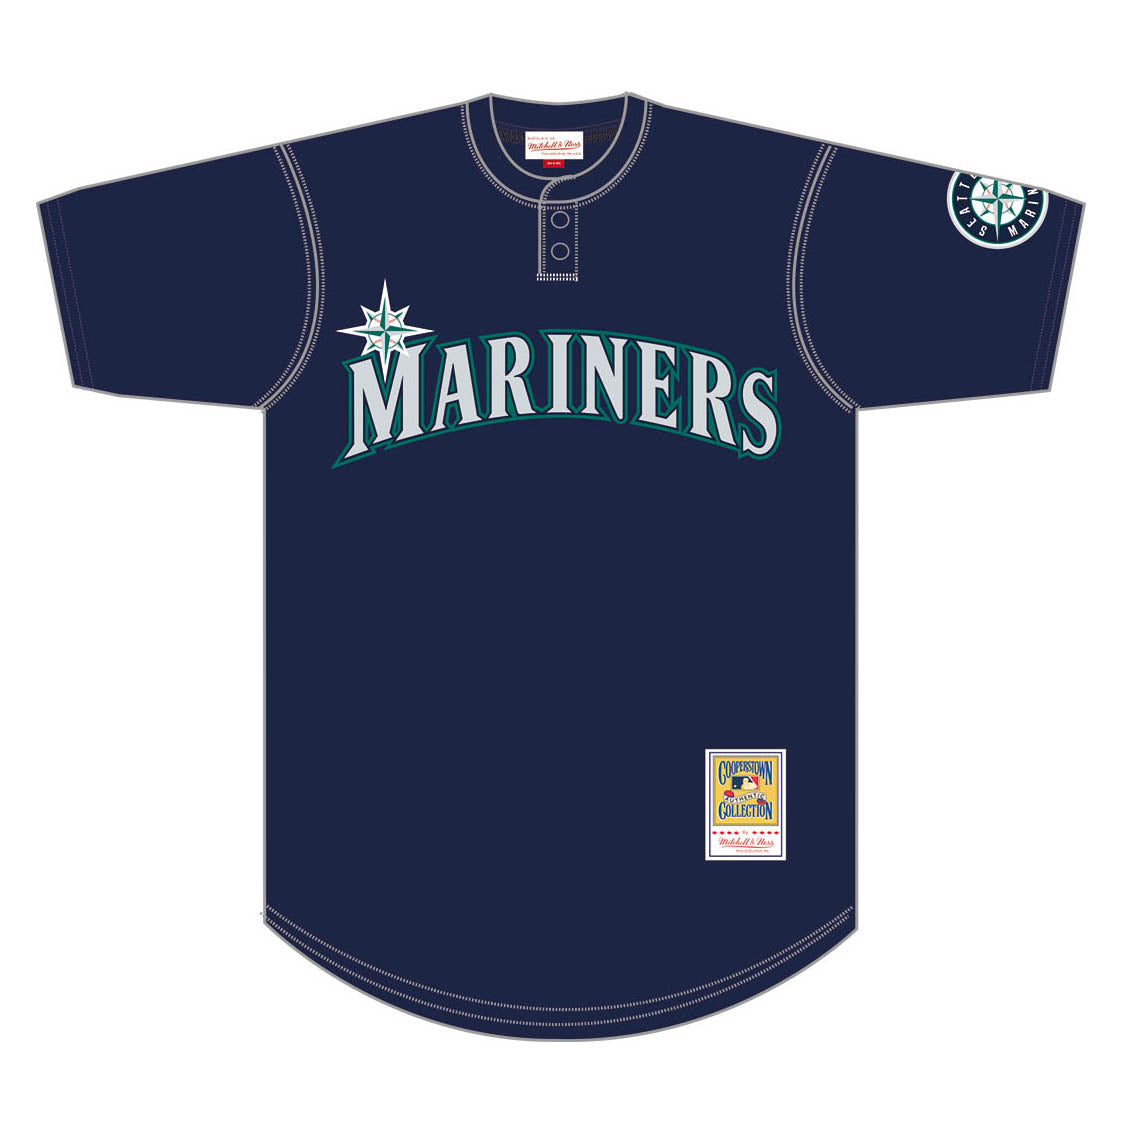 new products bac05 af180 MITCHELL & NESS - AUTH MESH BP JERSEY 1995 MARINERS KEN GRIFFEY JR - Blue